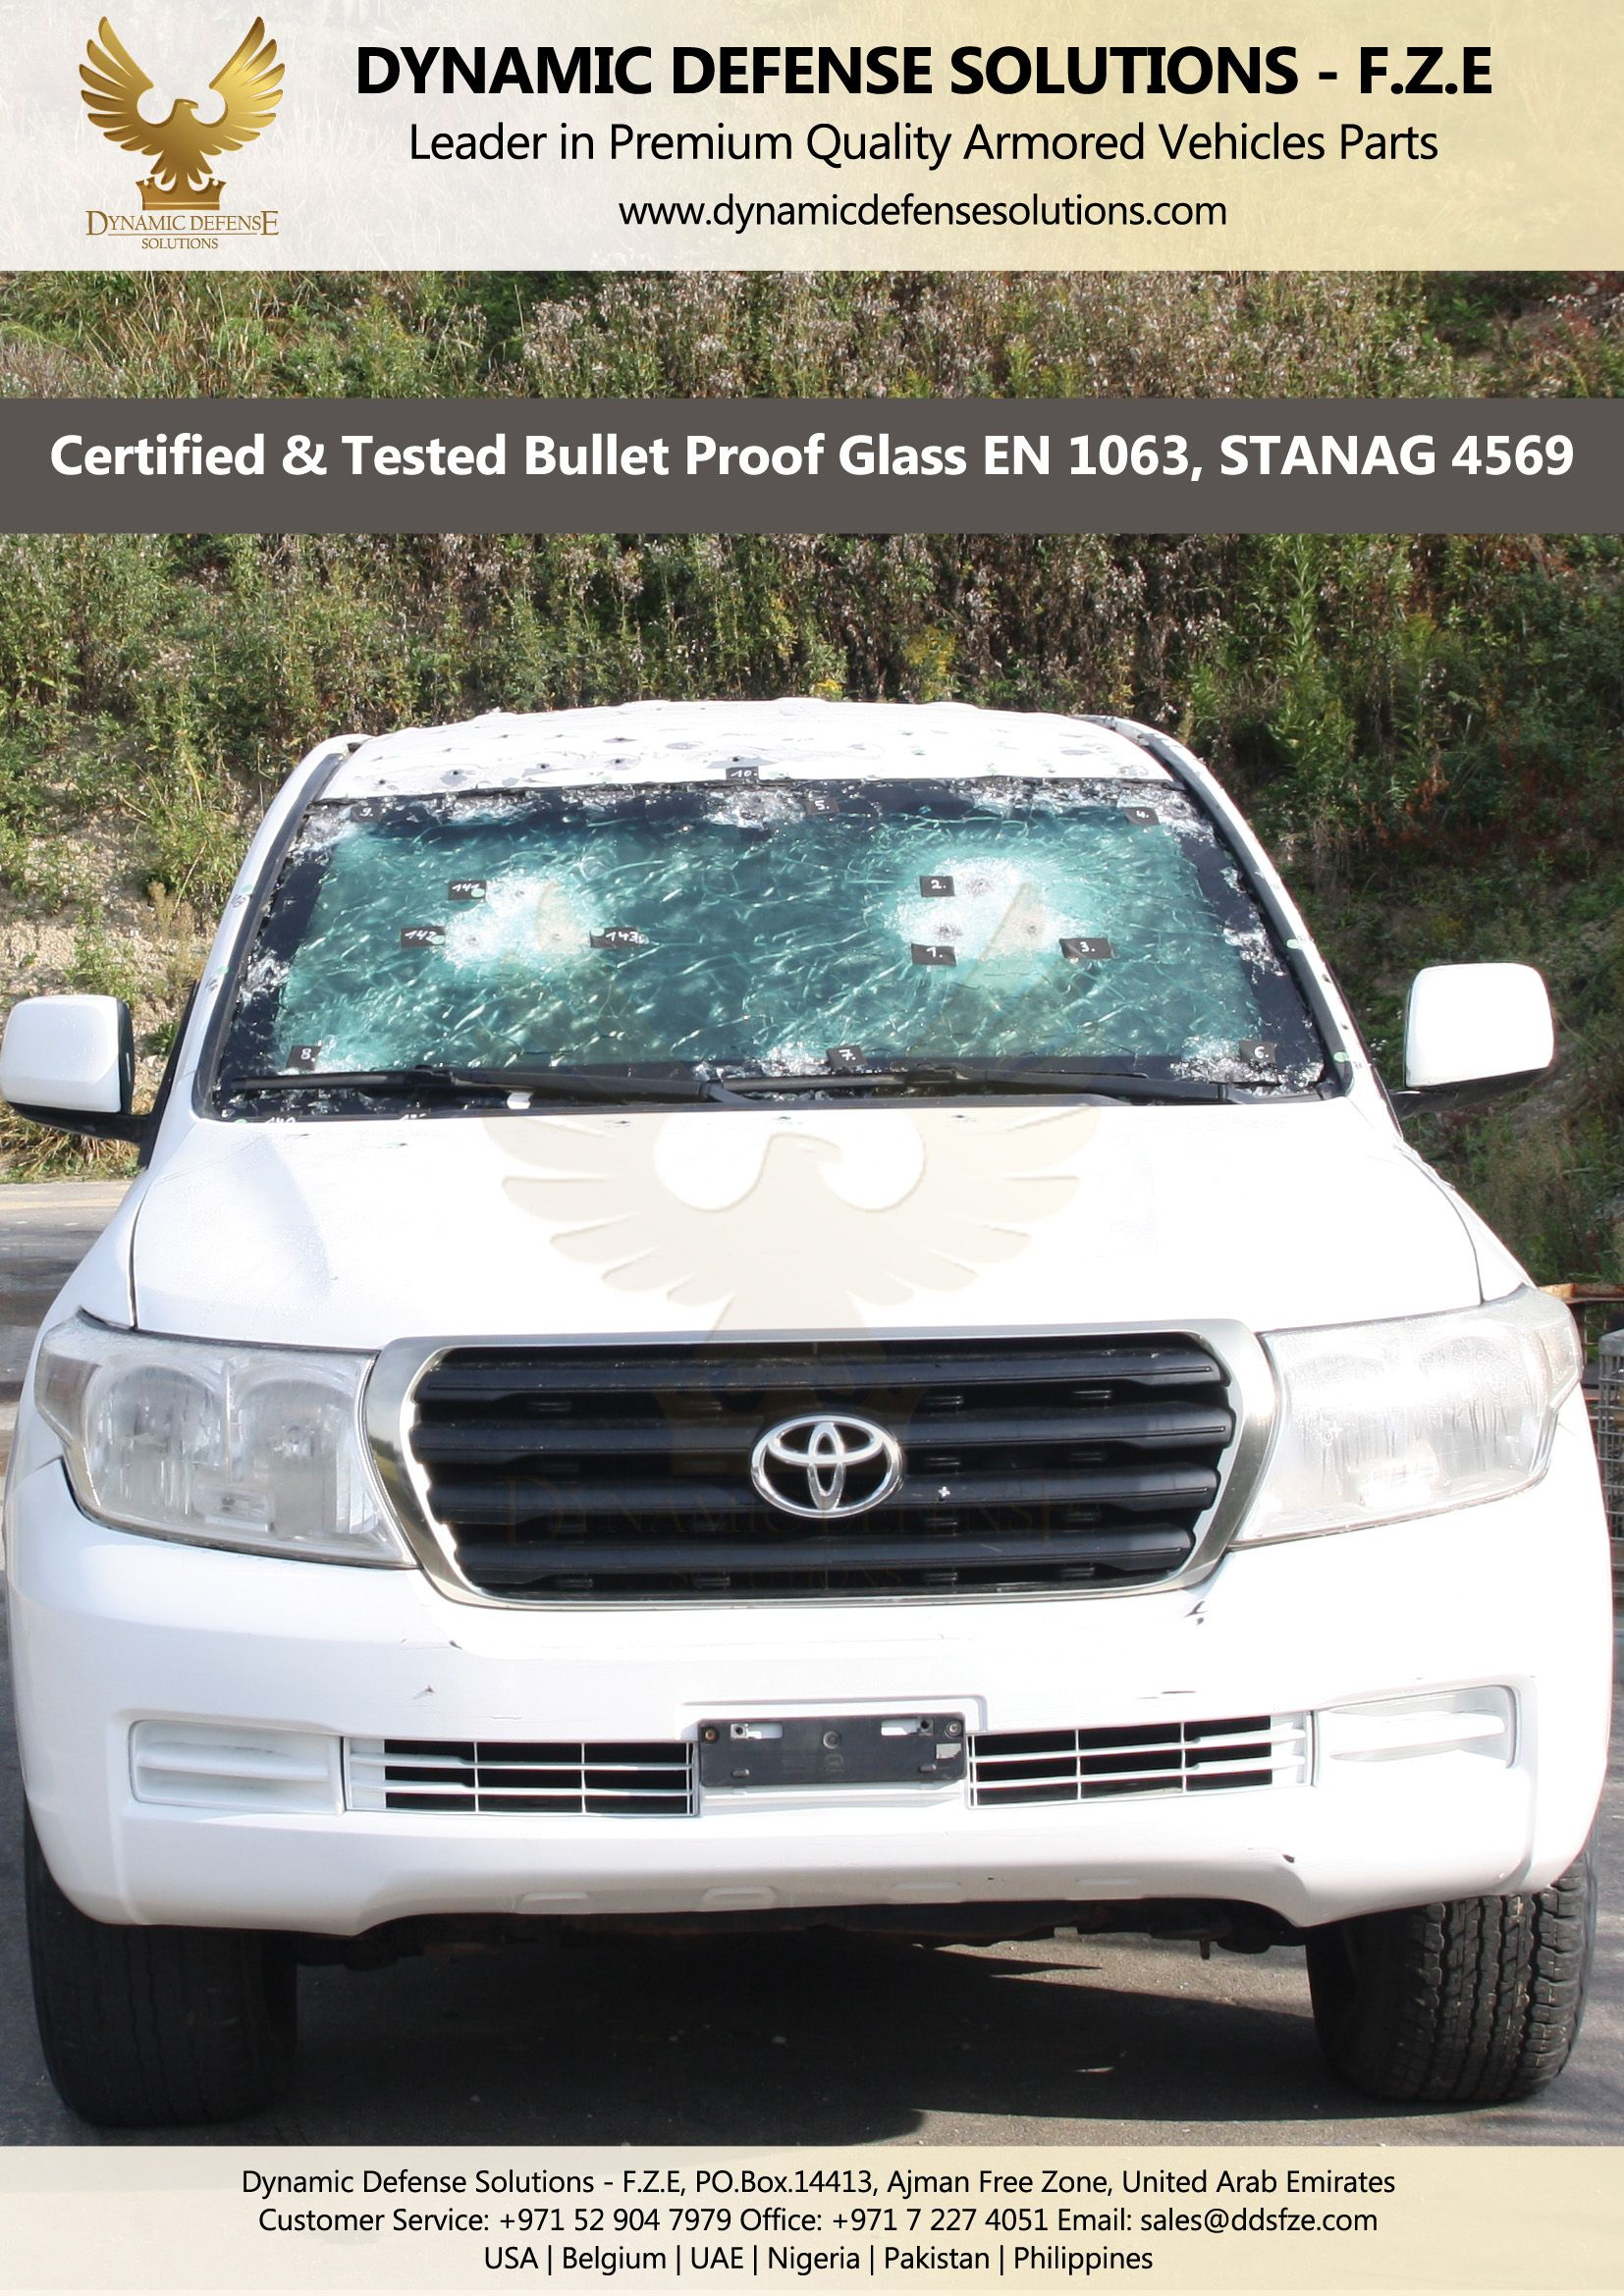 Bullet Proof Armored Glass B6 B7 STANAG 4569 Toyota Land Cruiser